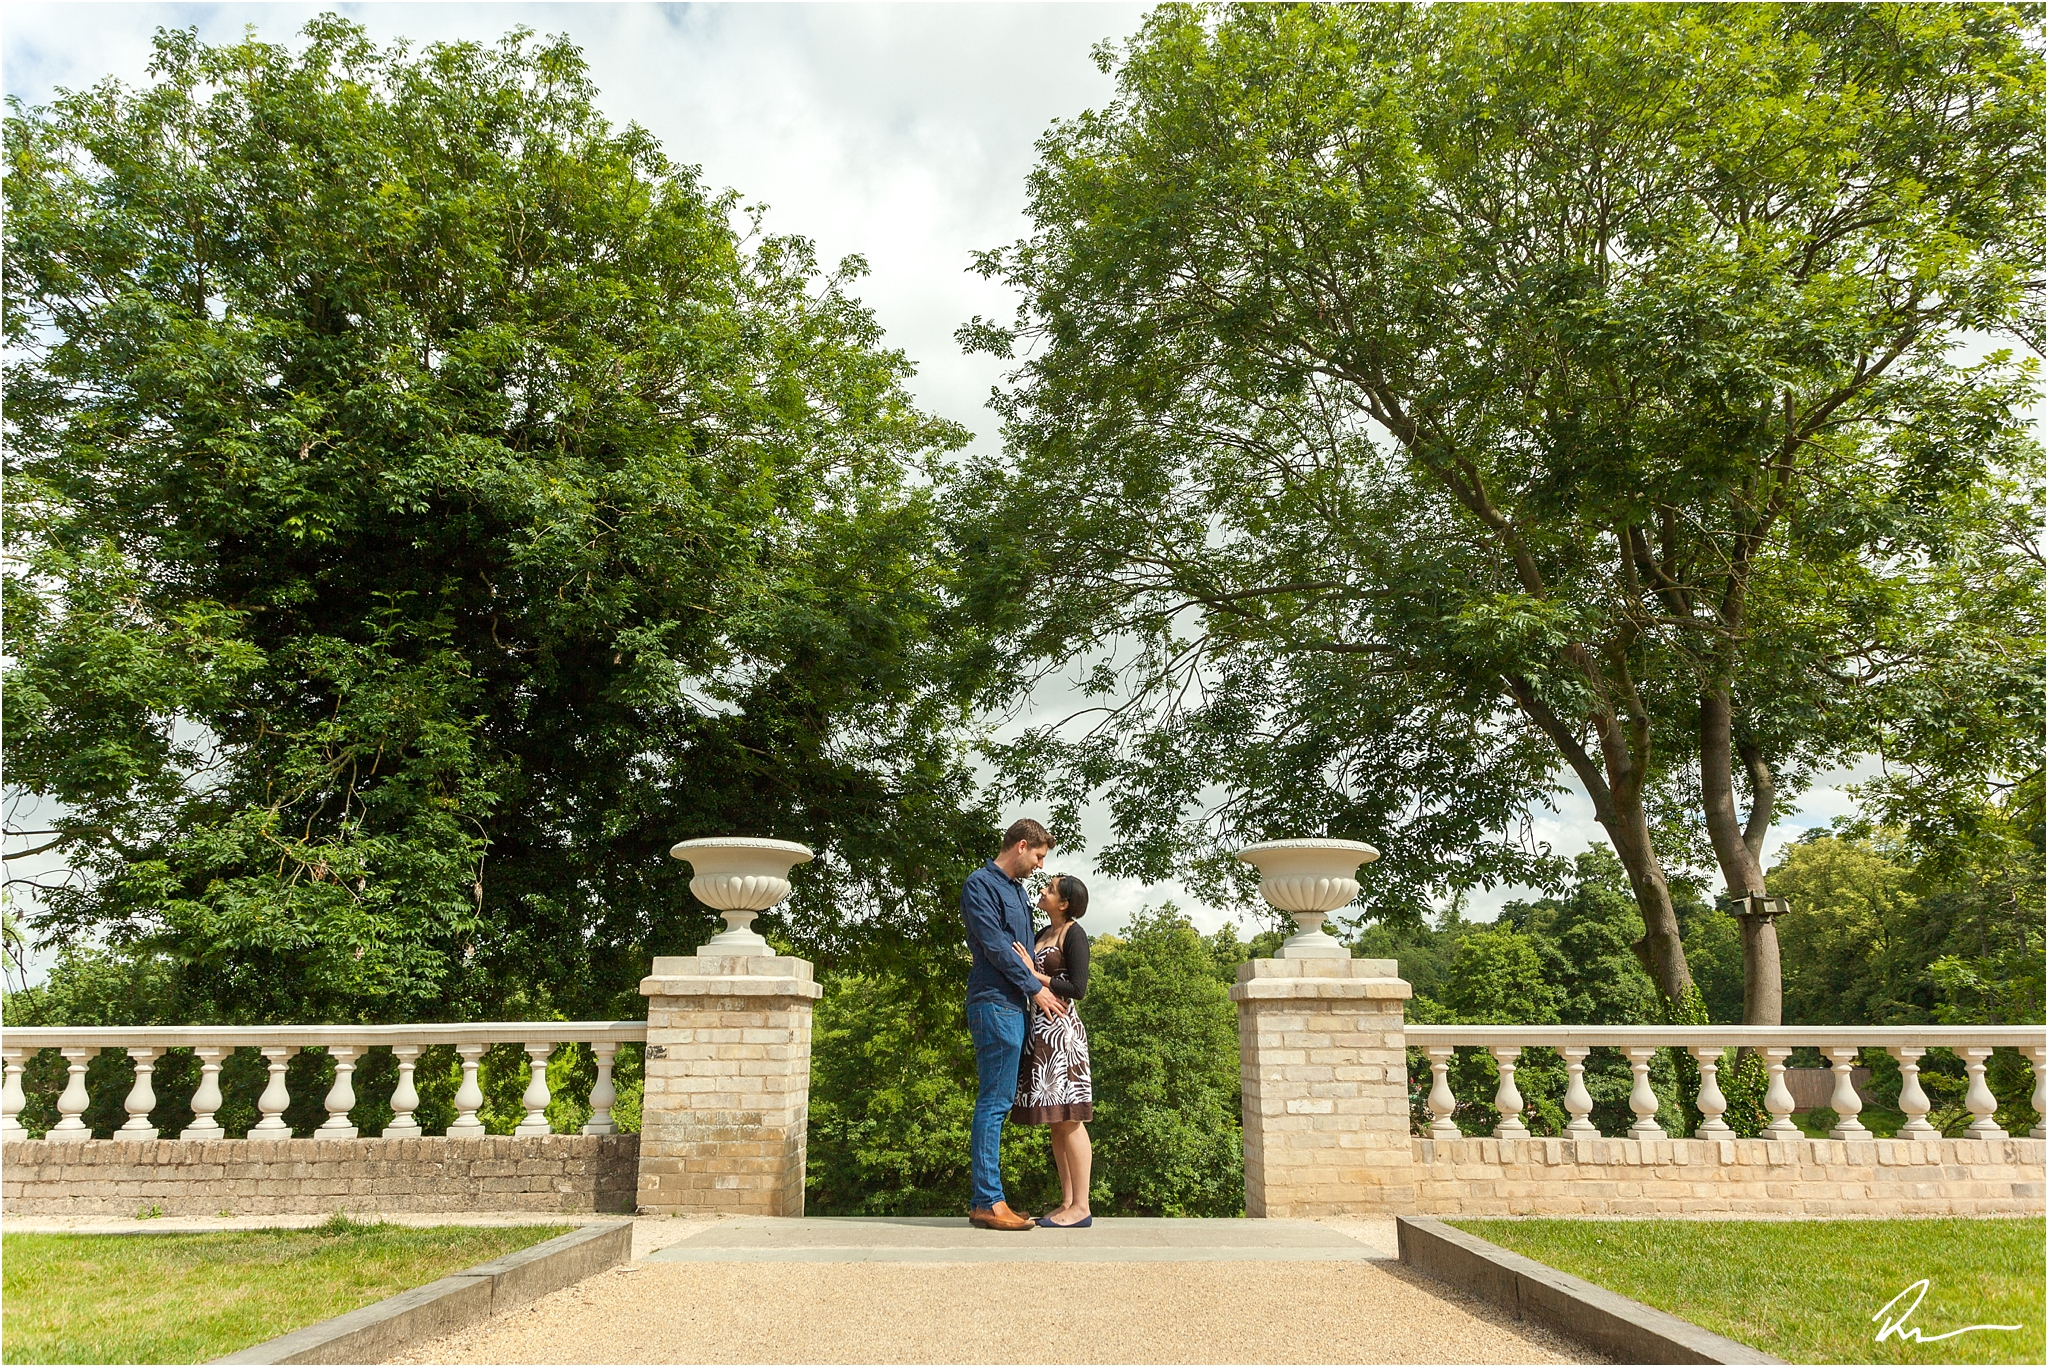 suffolk-wedding-photographer-holywells-park-ipswich